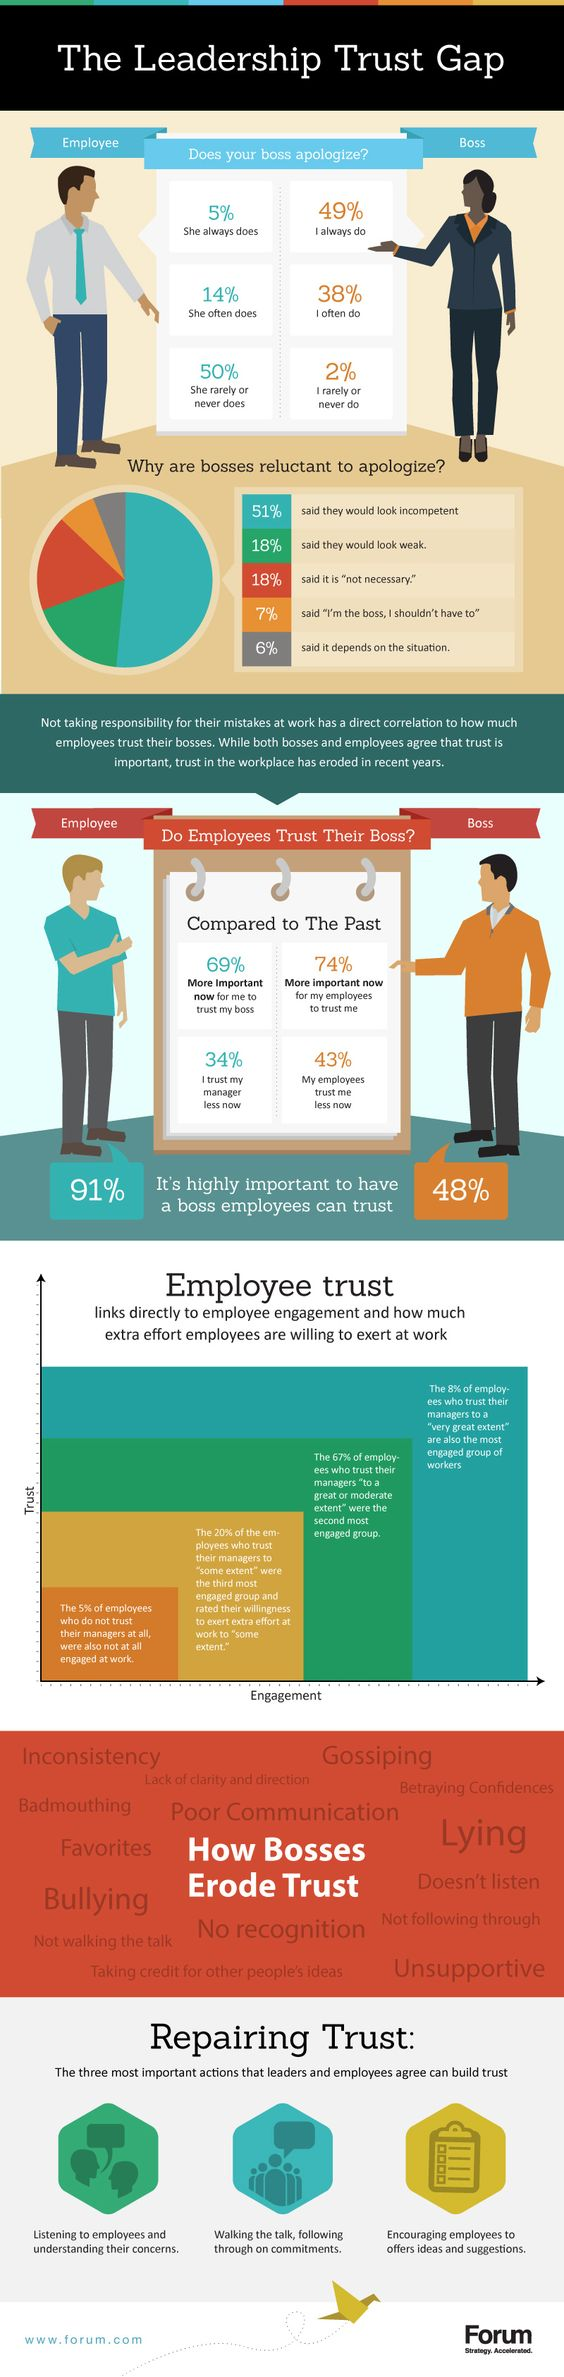 Why Don't We Trust Our Bosses? The Leadership Trust Gap